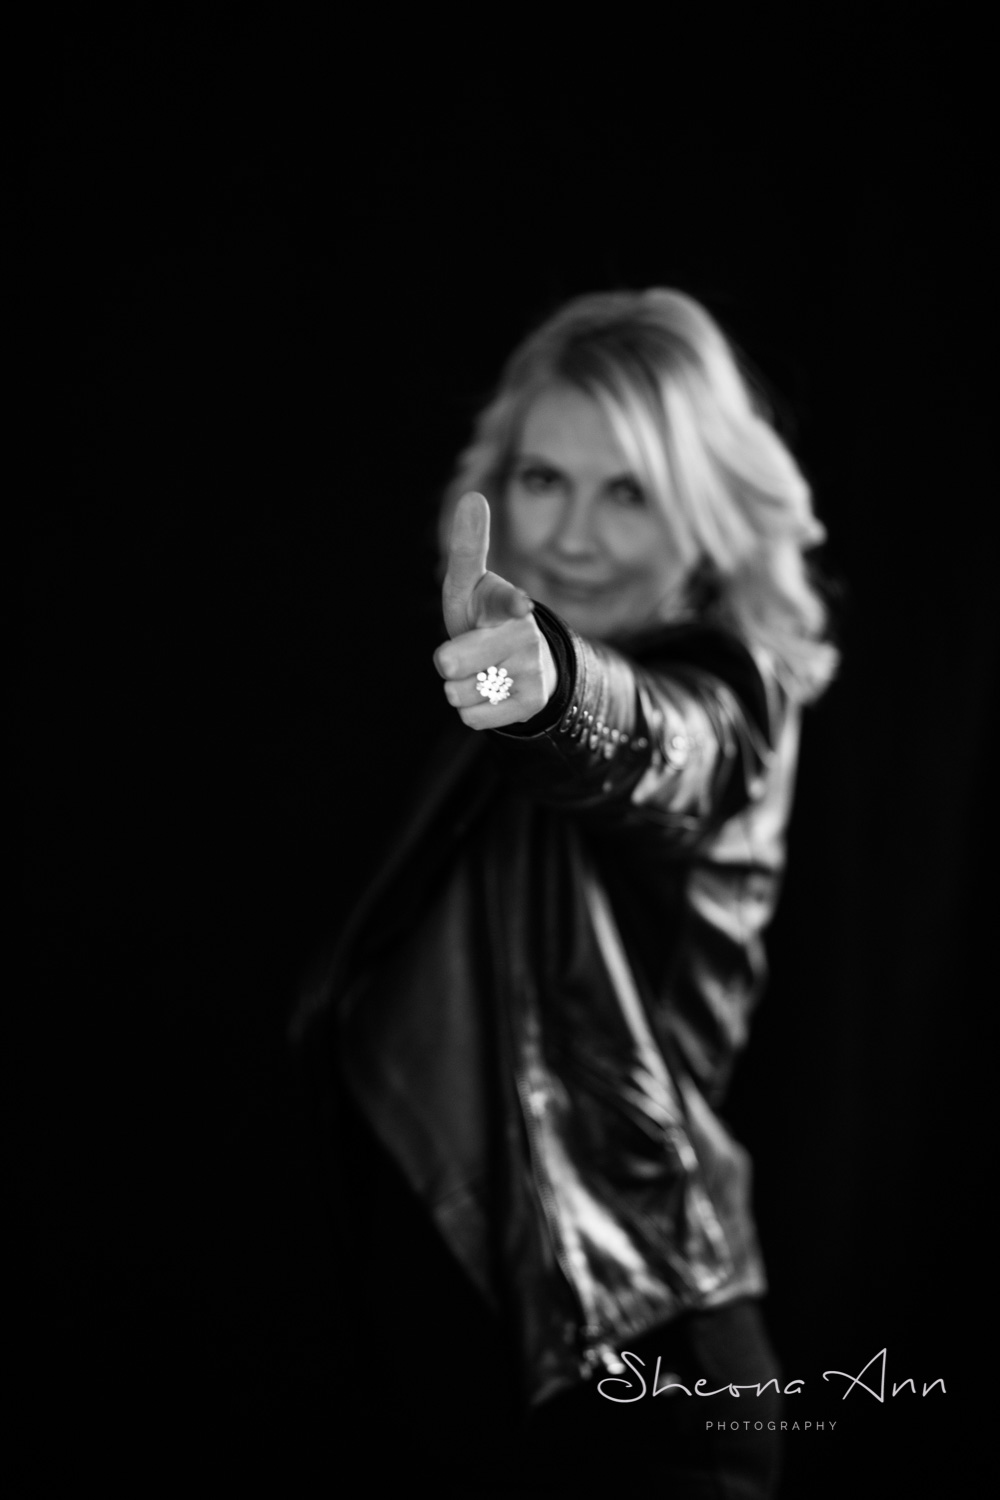 woman-pointing-bw-sheona-ann-photography (1 of 1).jpg